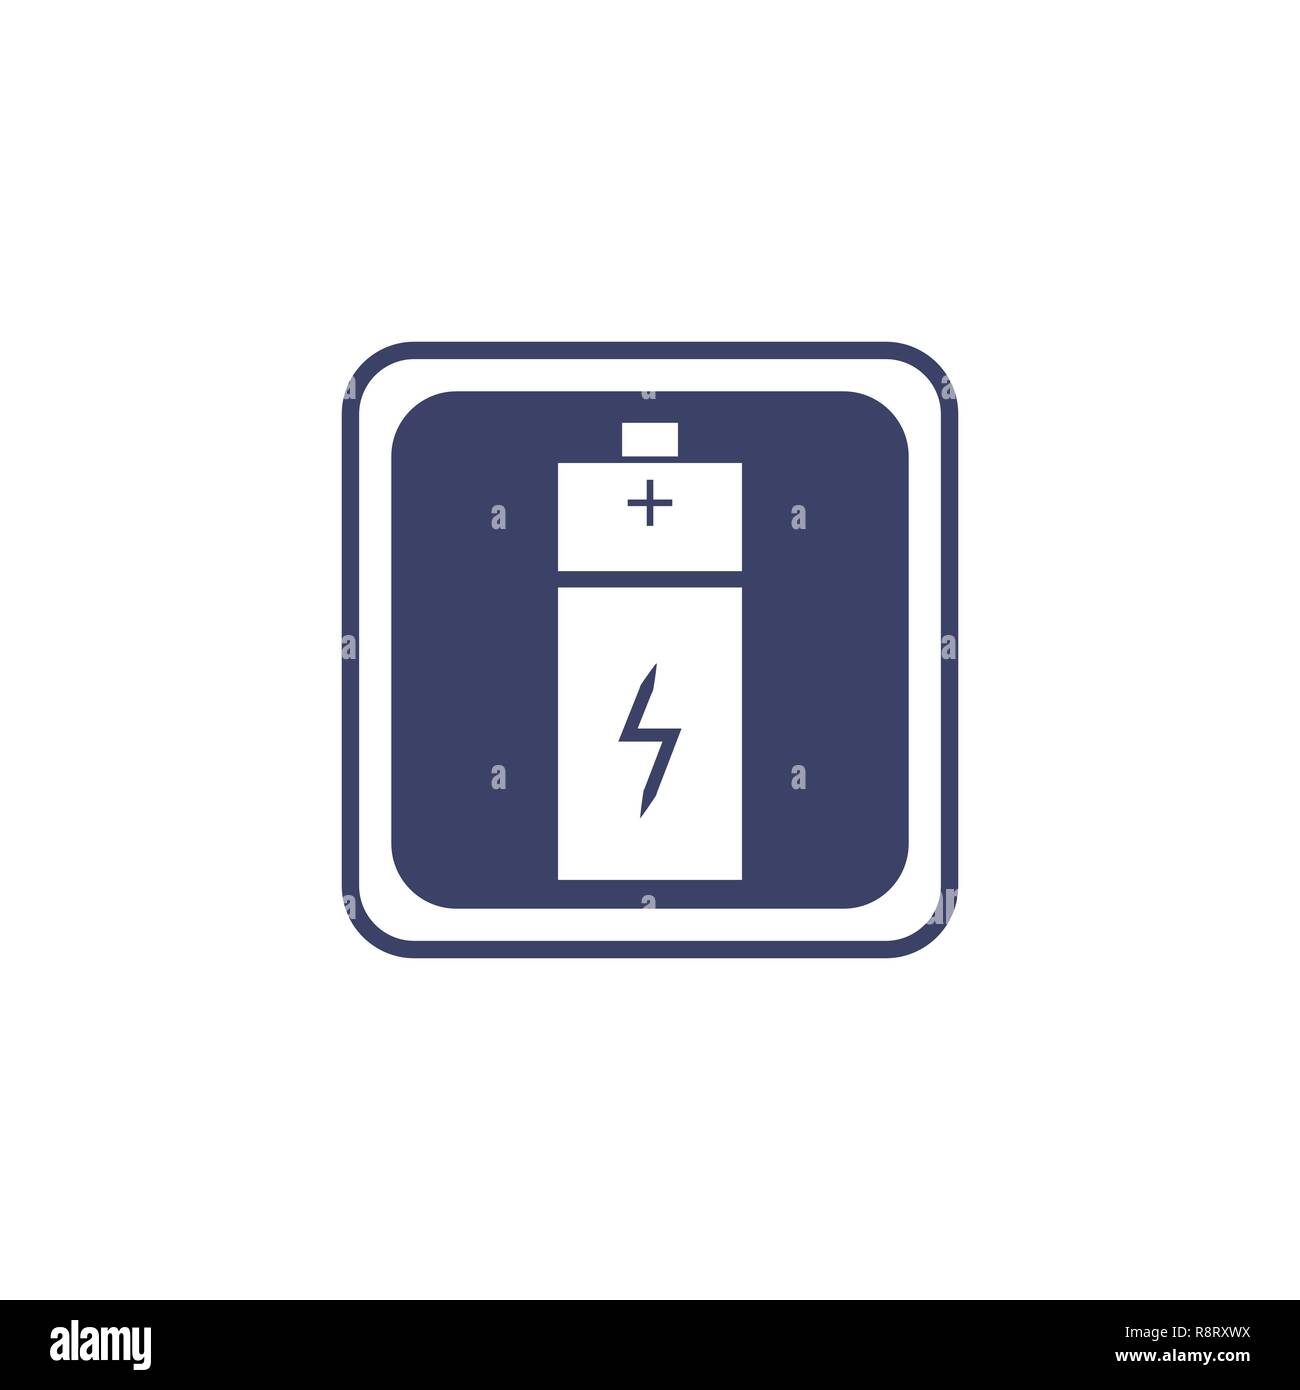 Battery icon or logo in flat style isolated on a white background - Stock Image